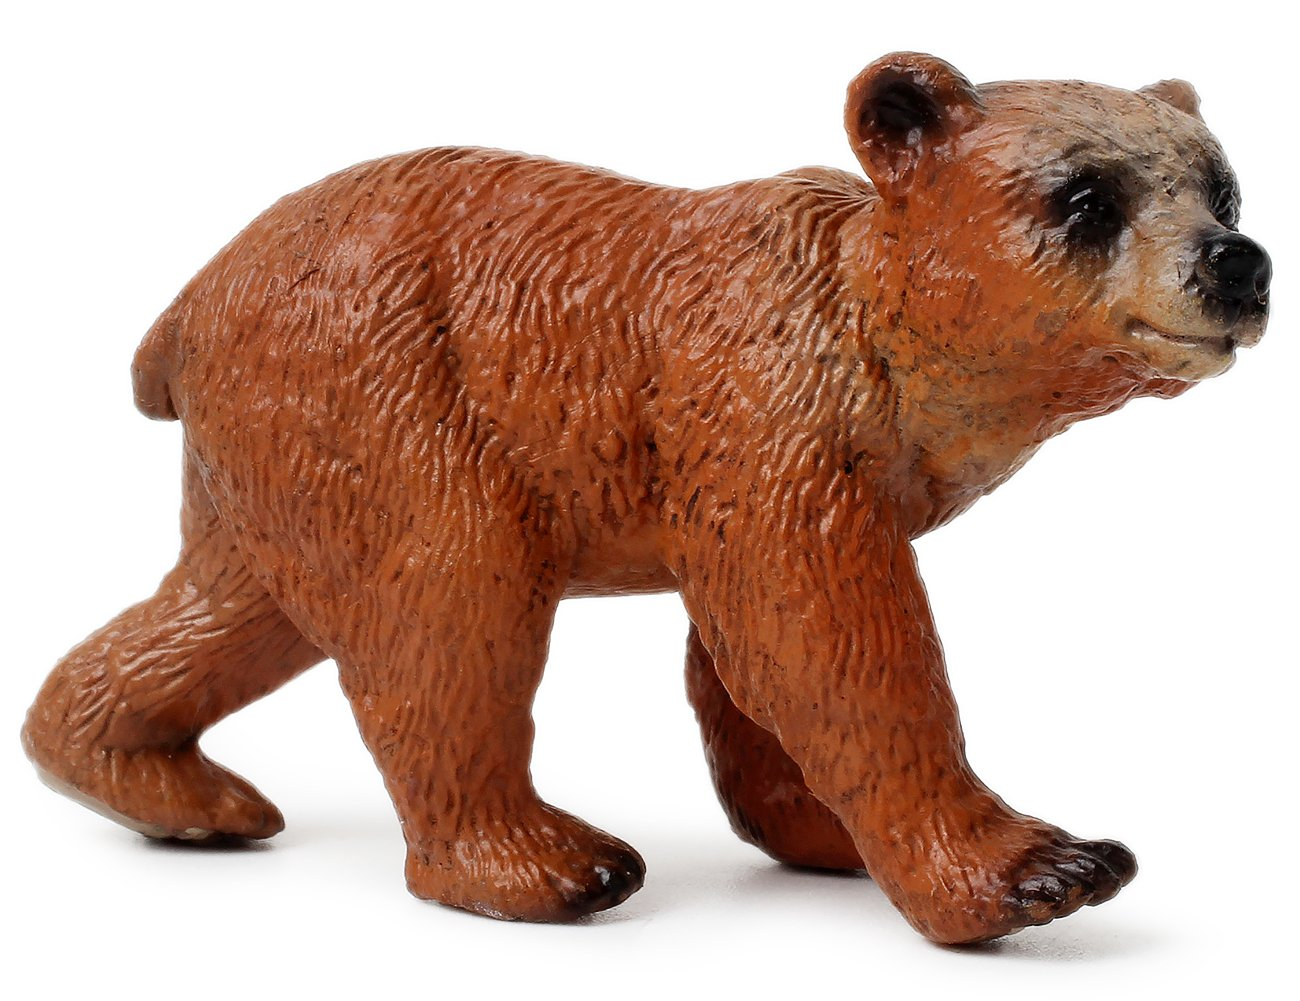 UANDME Miniature Grizzly Bear Toy Figurines, Set of 3 Bear Figures, North American Wildlife Grizzlies Male, Female and Cub (Set) by UANDME (Image #3)